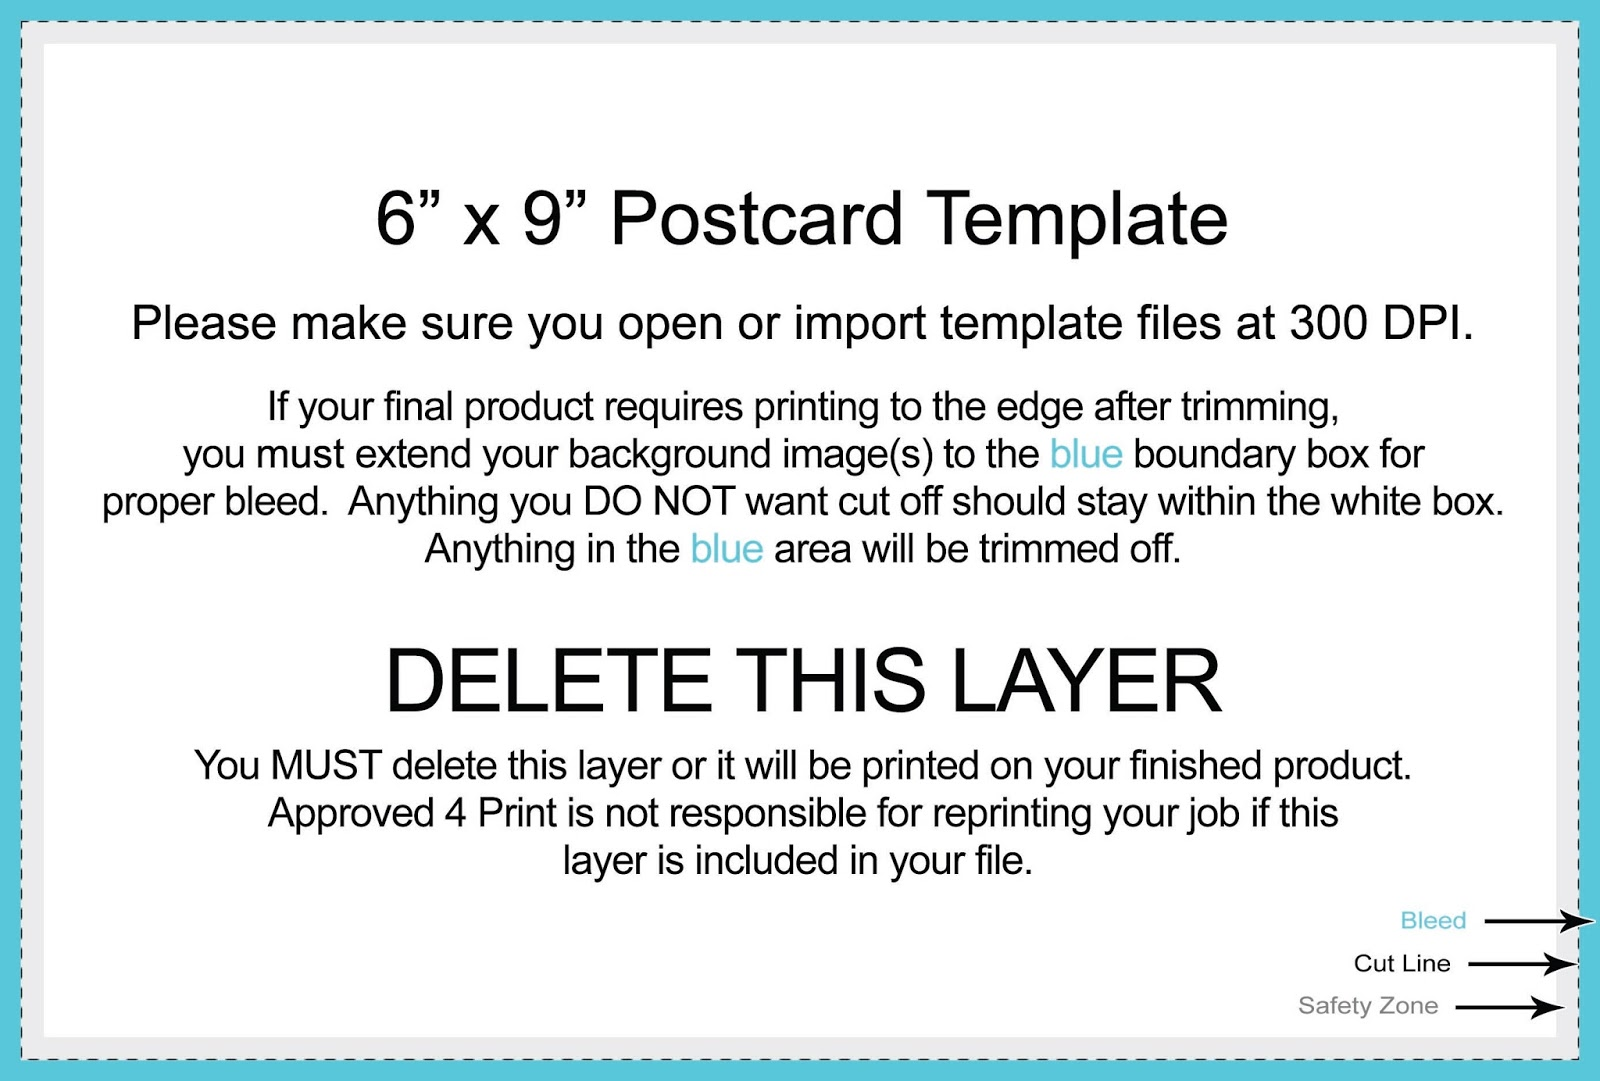 6x9 postcard template photoshop free download d templates 6x9 postcard template photoshop pronofoot35fo Gallery